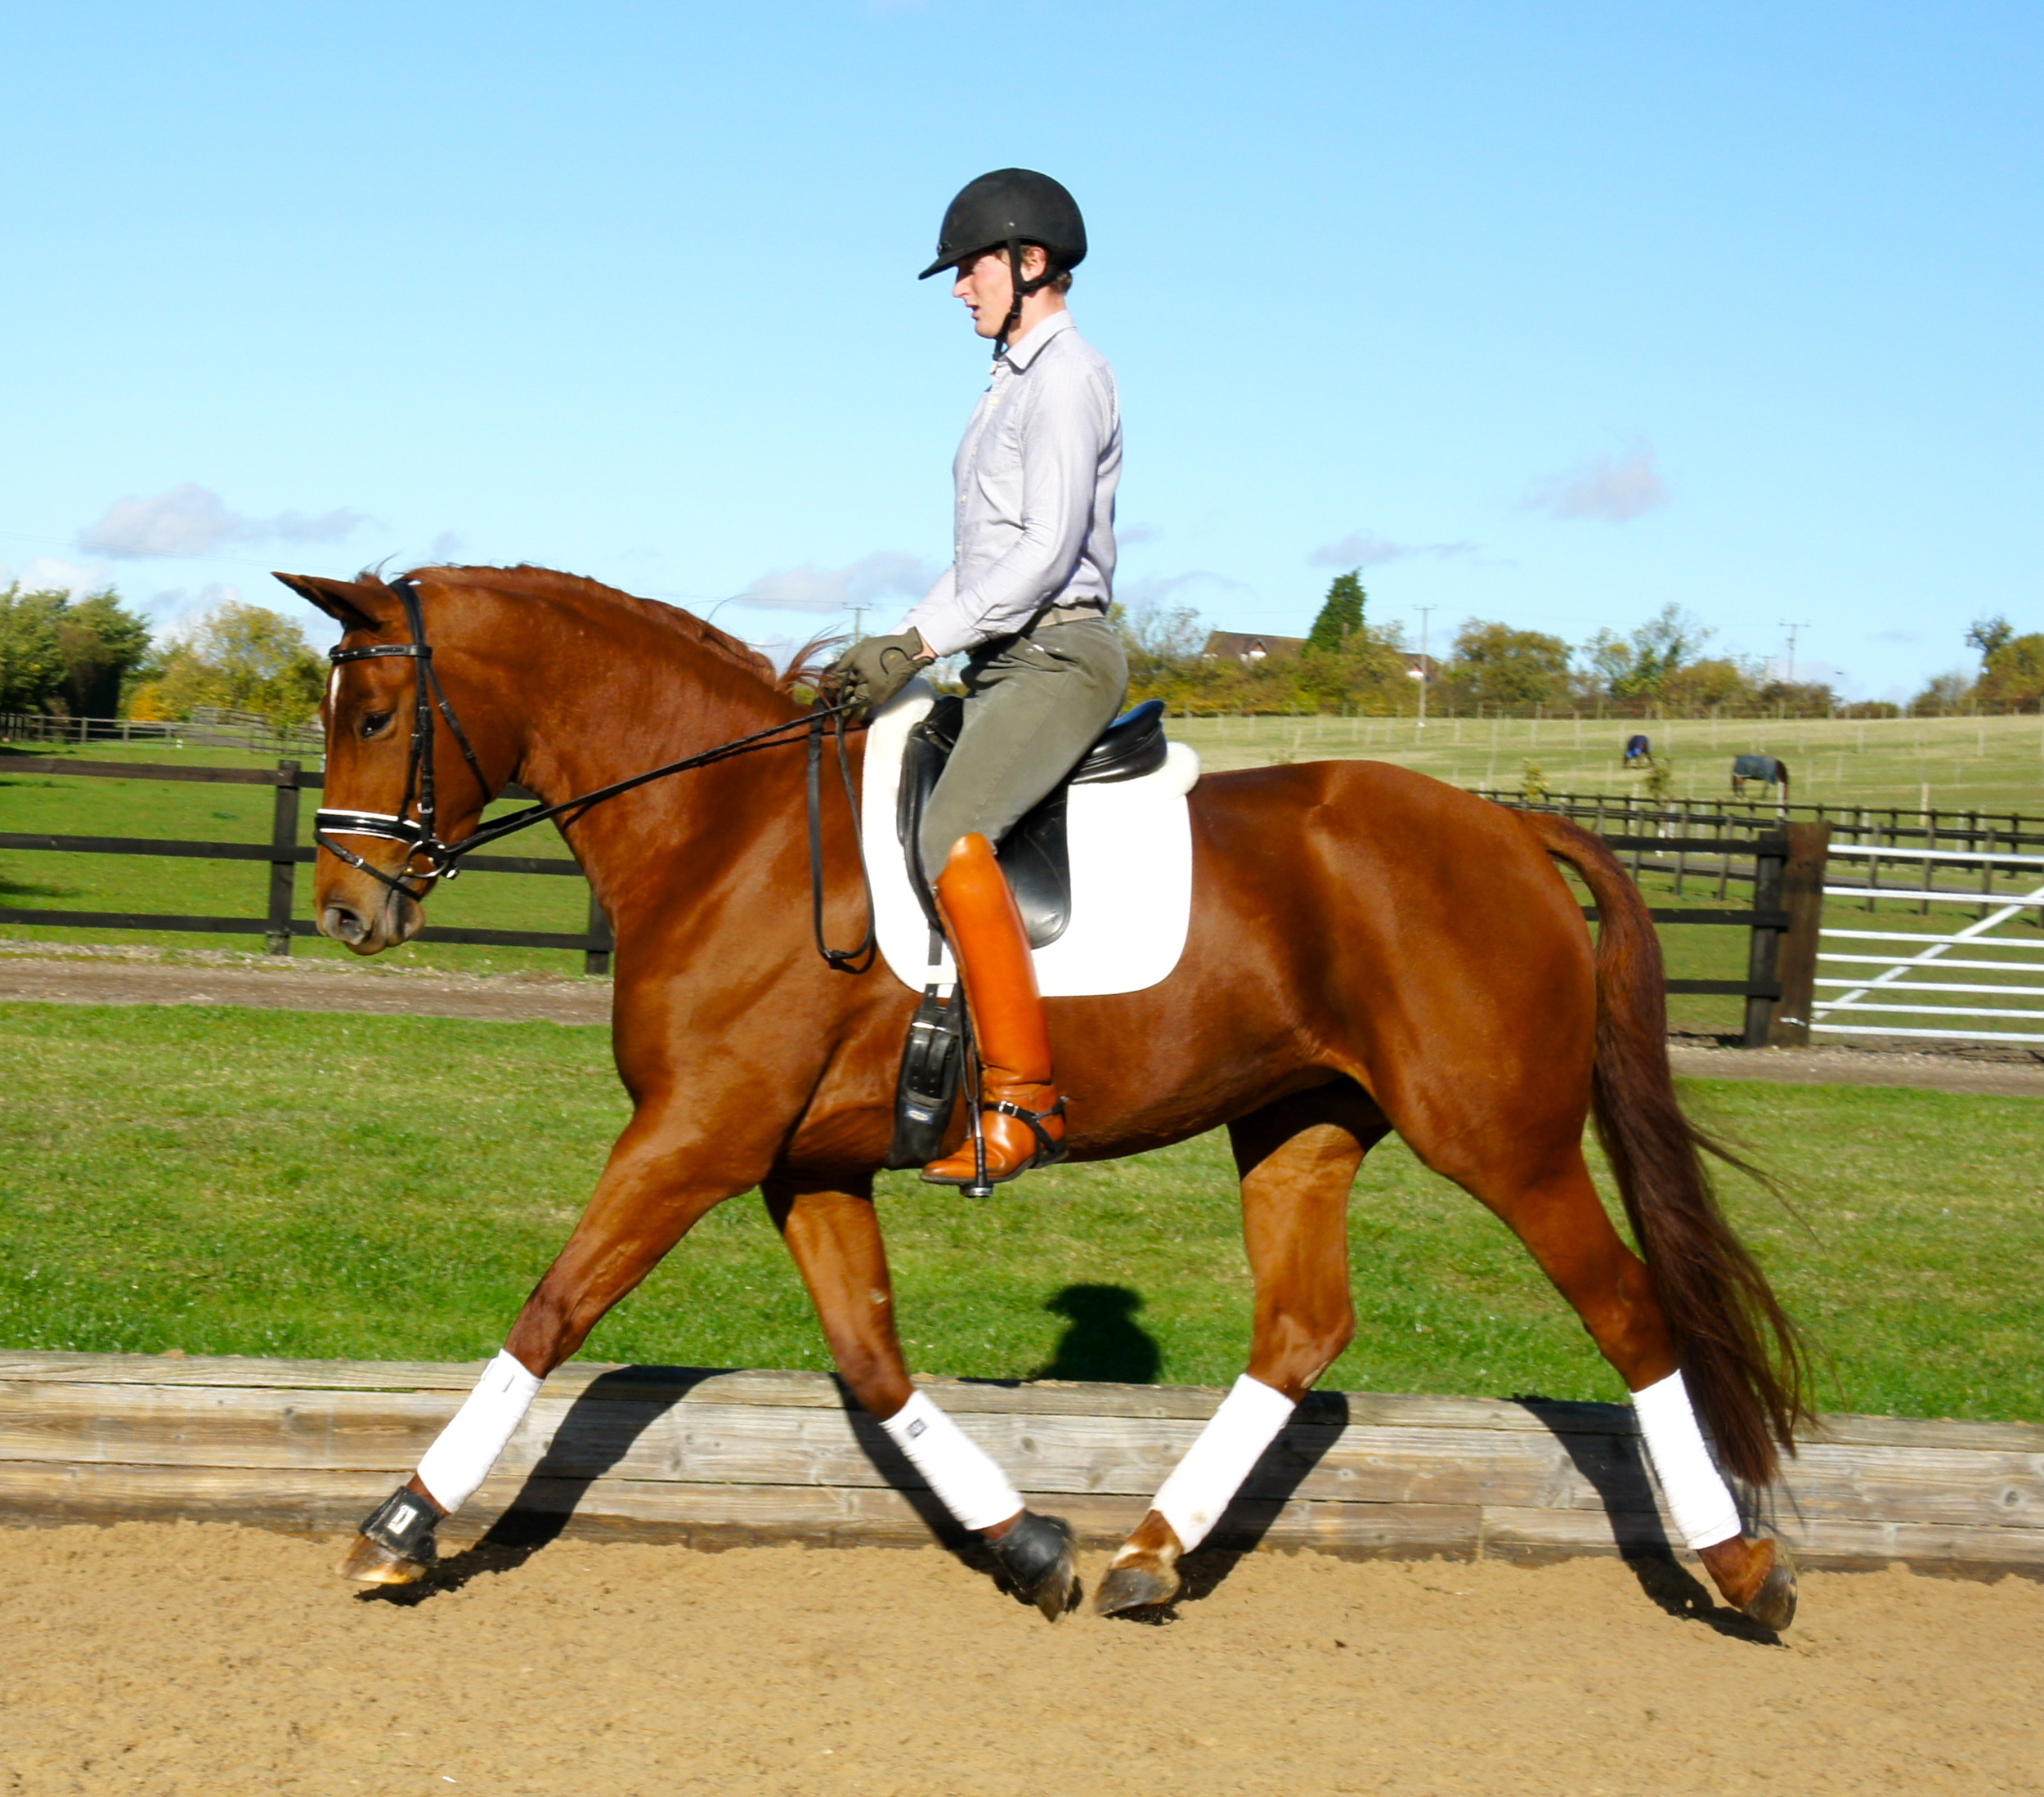 Princess   Stable Name : Princess  Colour : Chestnut  Height : 16.2  Sex : Mare  Breeding : Weserstar M  Country of Origin : GB  Year Foaled : 2007  Level :Novice